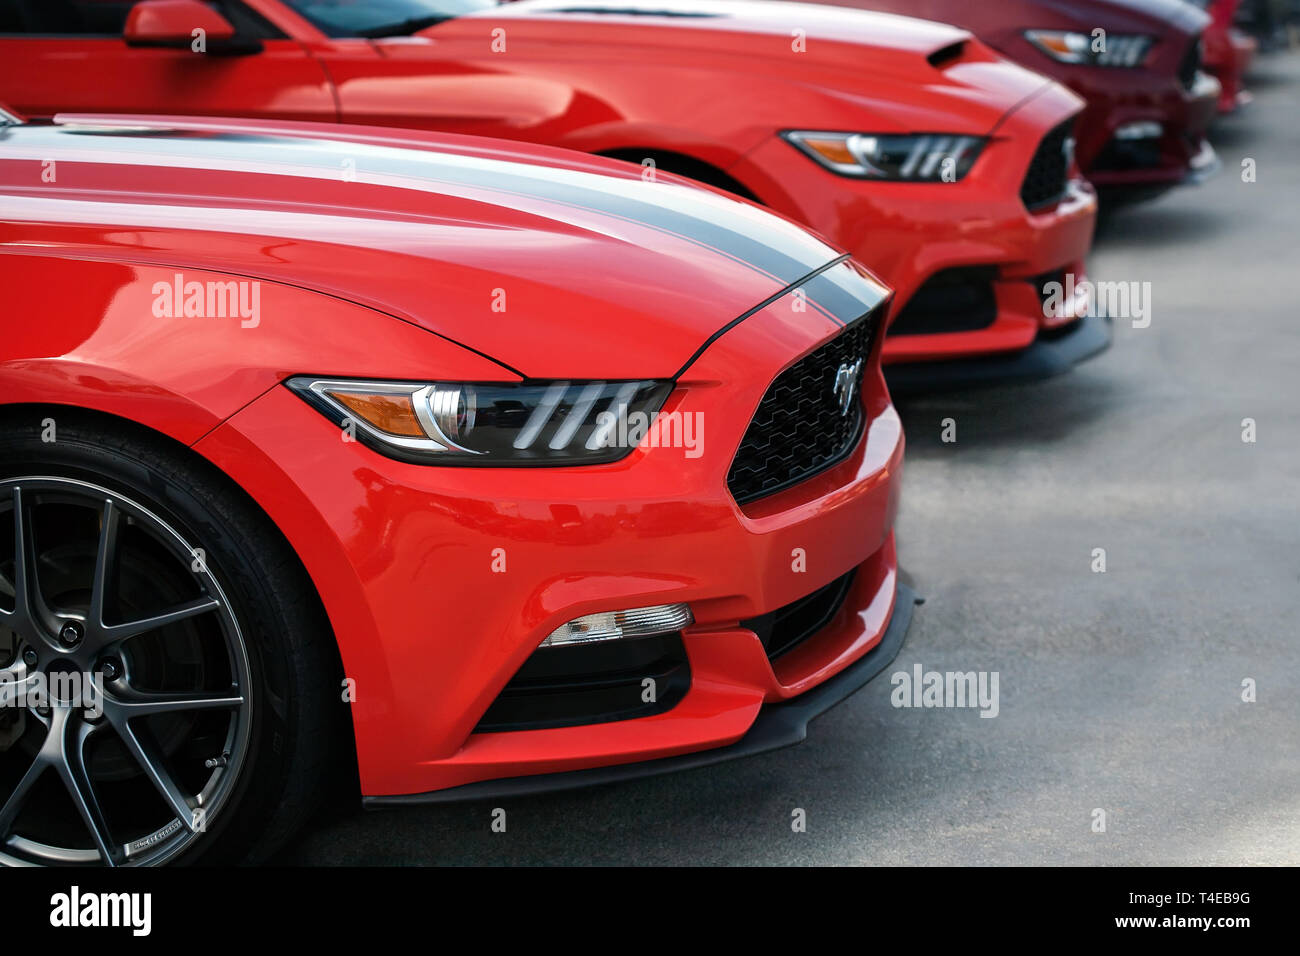 A line up of ford mustangs from the 2019 fabulous fords forever auto show in Anaheim California. Stock Photo